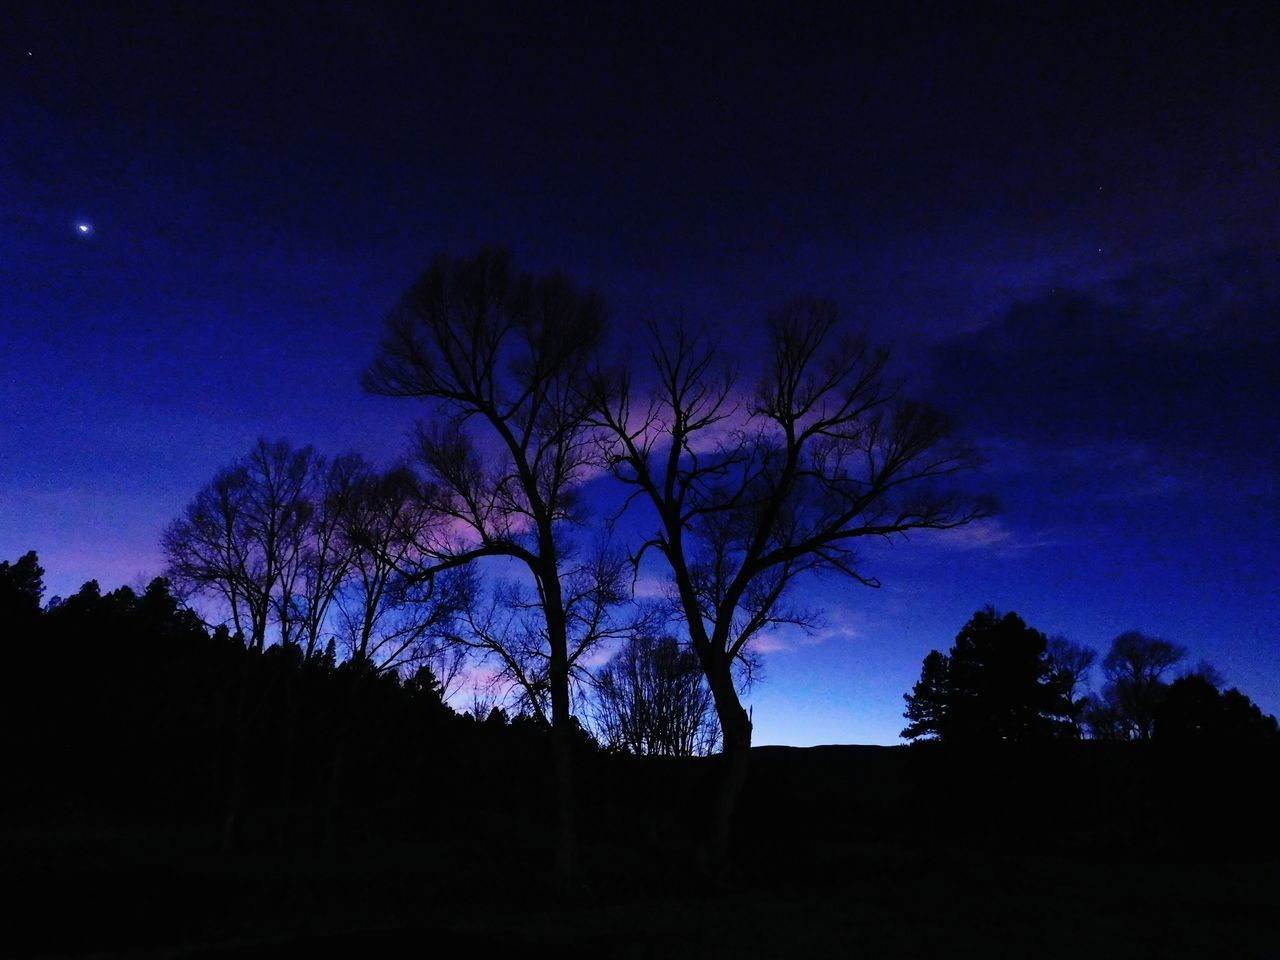 Tree Silhouette Star - Space Low Angle View Sunset Beauty In Nature Newmexicosunset Newmexicoskies Newmexicosunsets Newmexicophotography NewMexicoTRUE Newmexicoskys Newmexicomountain Rural Scene